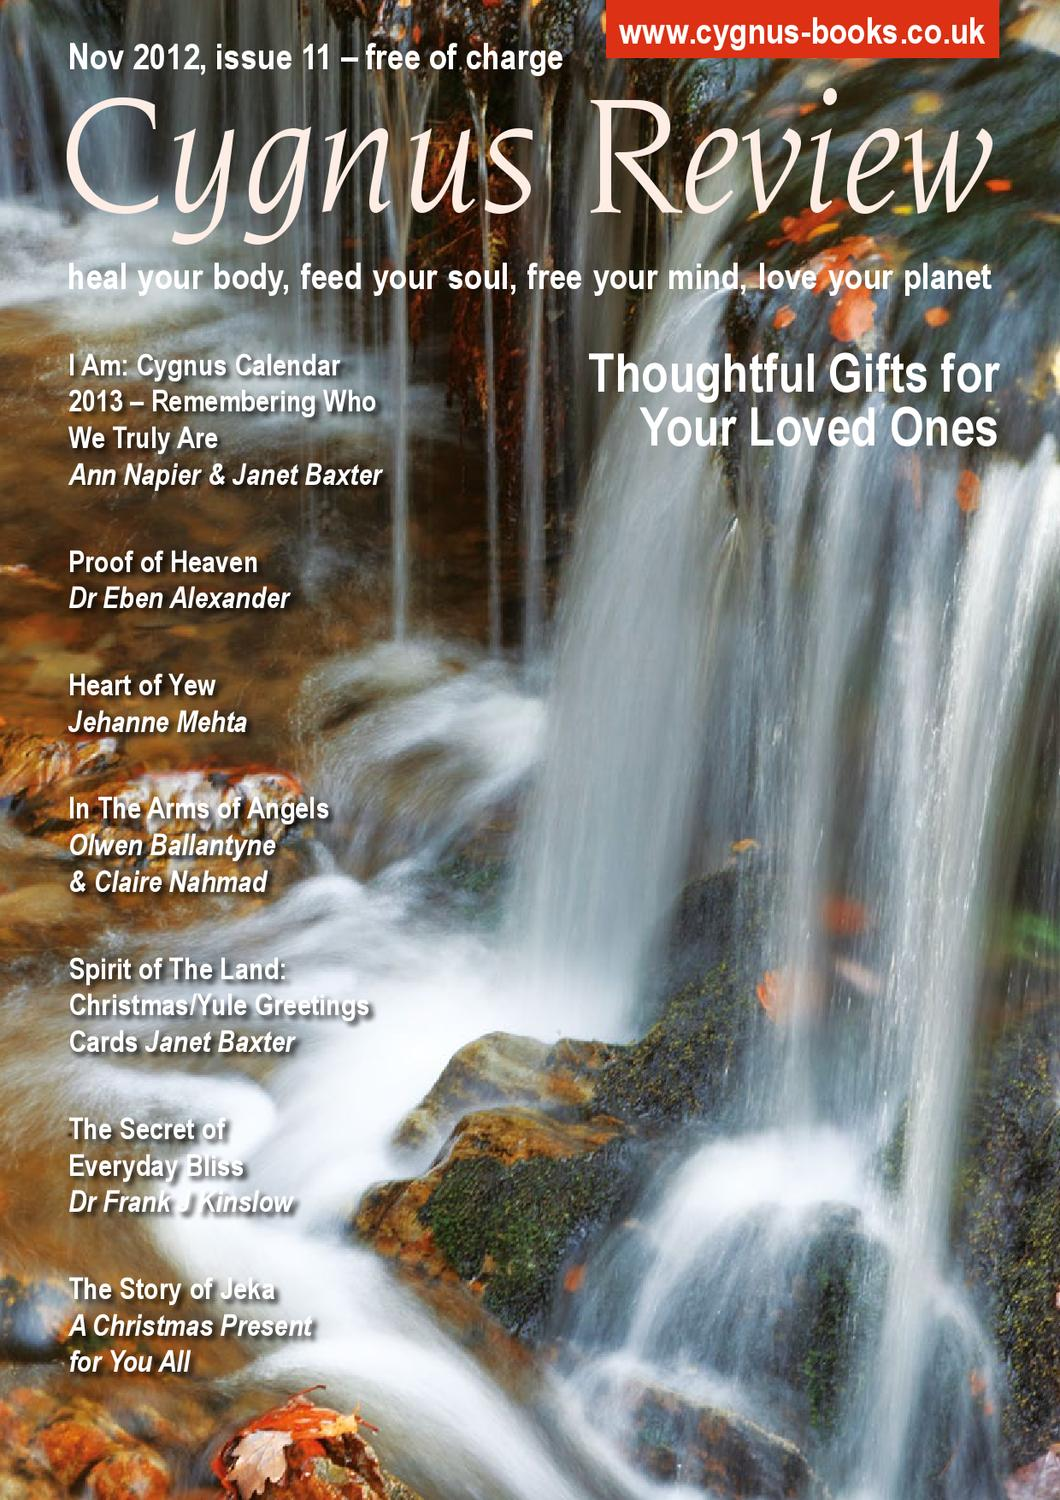 Cygnus Review, 2012 Issue 11 by Cygnus Community Review - issuu